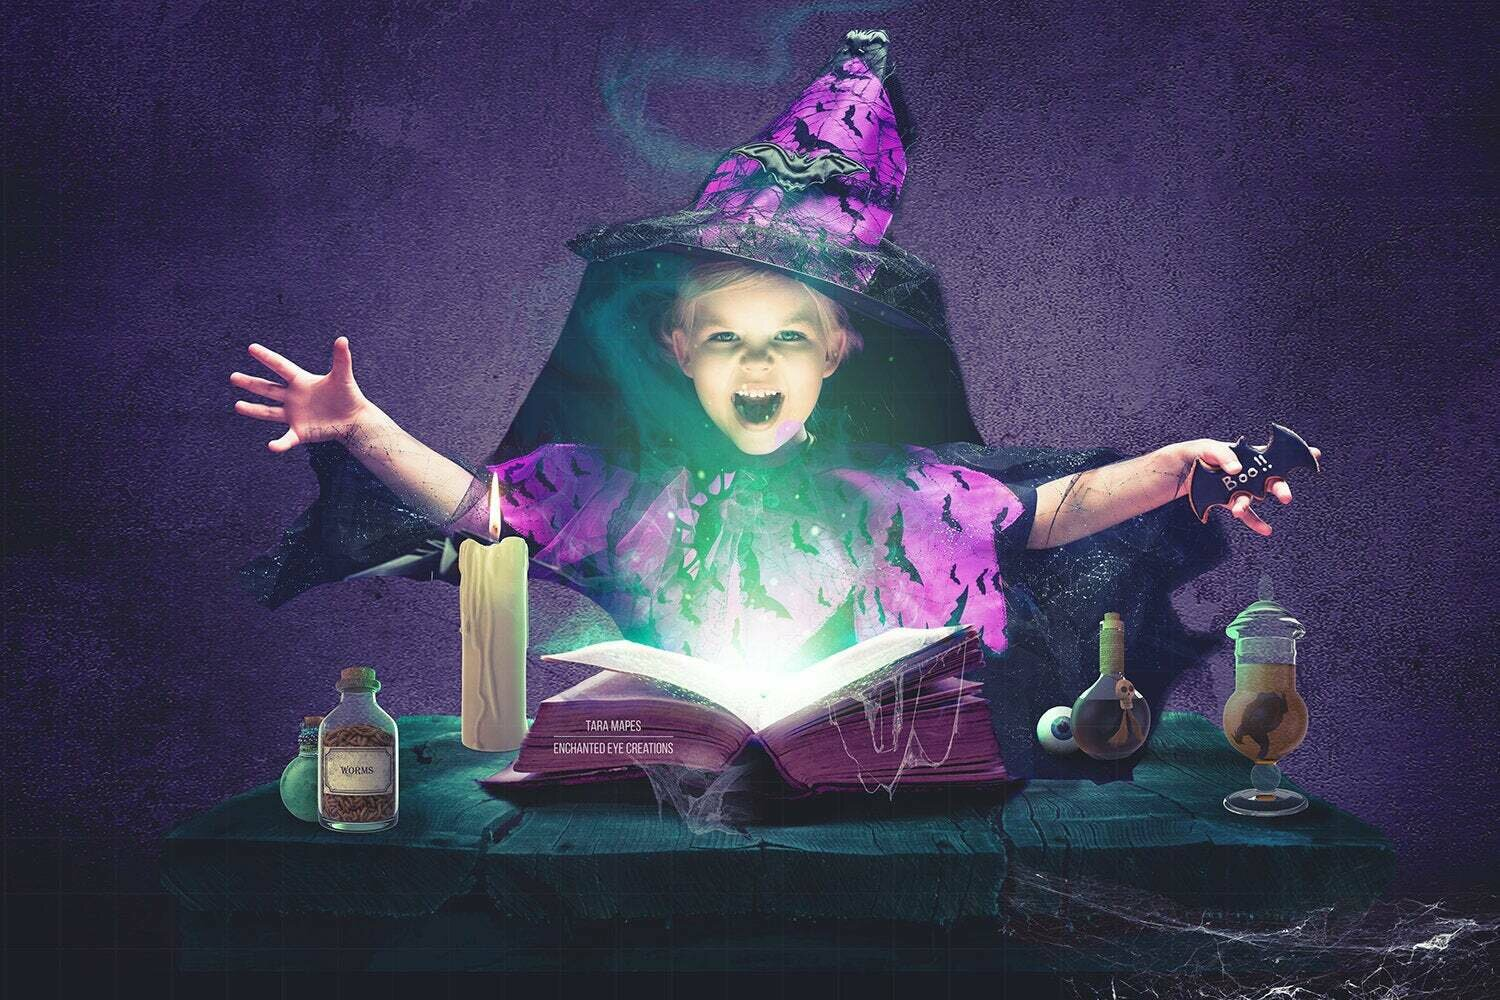 Witch Spell Book Digital Background - Halloween Spell Book - Hocus Pocus Spells - Layered PSD Digital Background / Backdrop